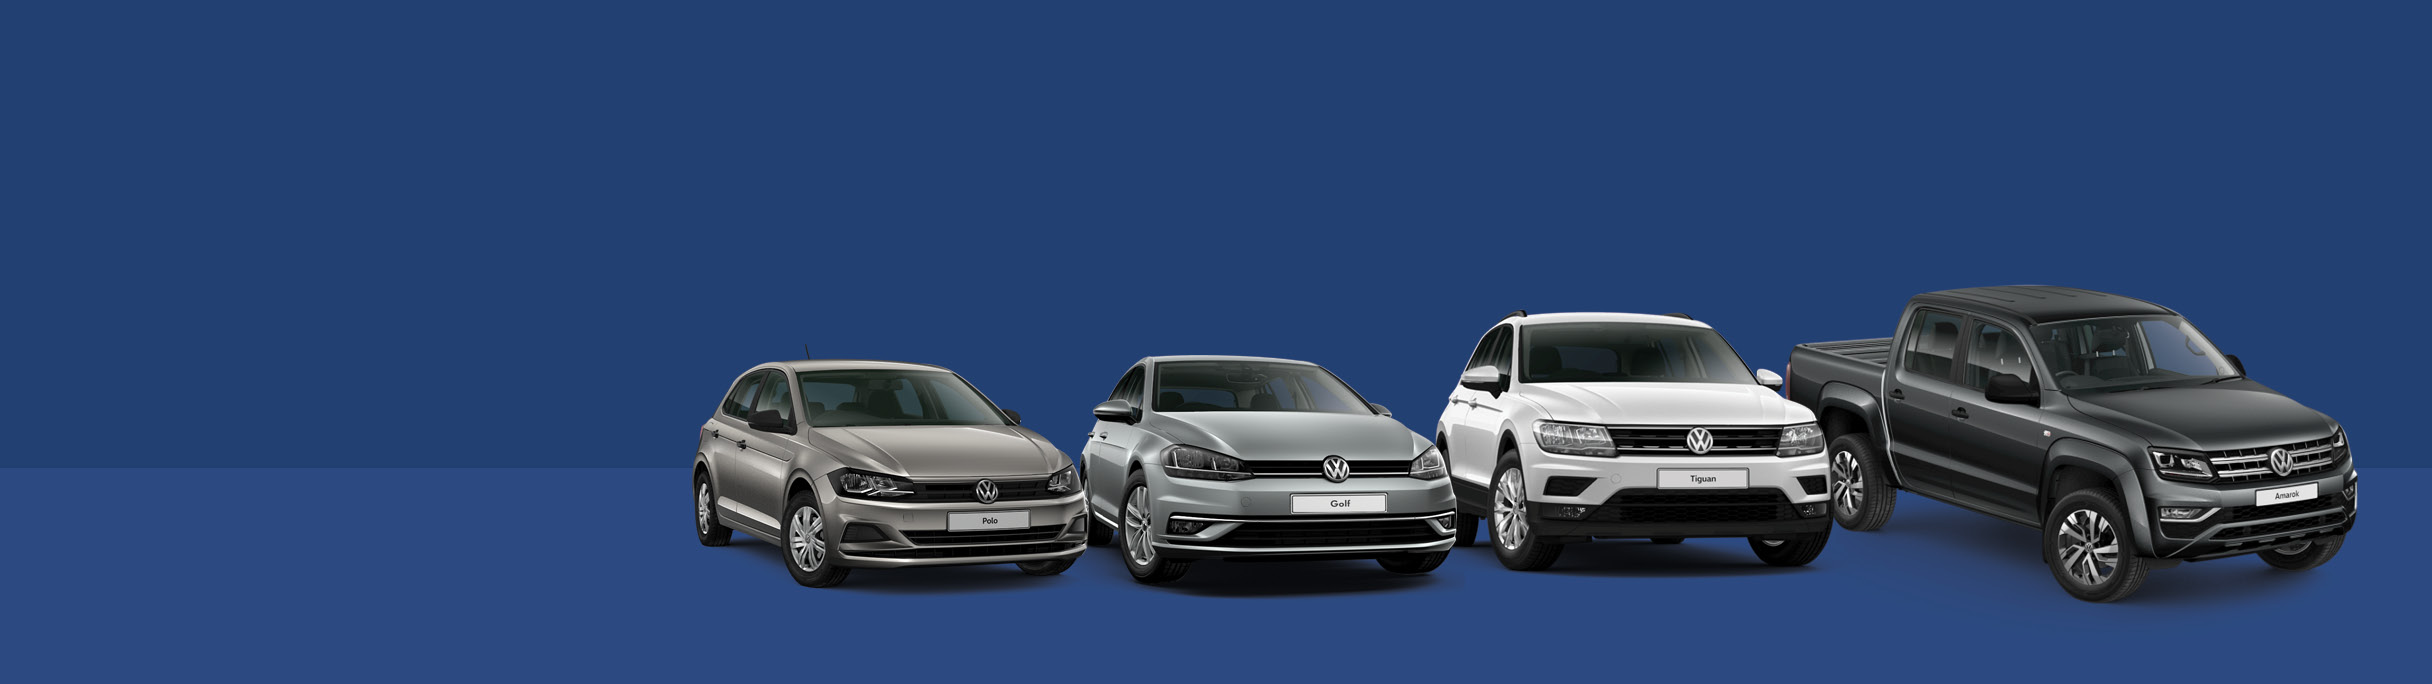 Barons Bruma dealership Volkswagen Specials